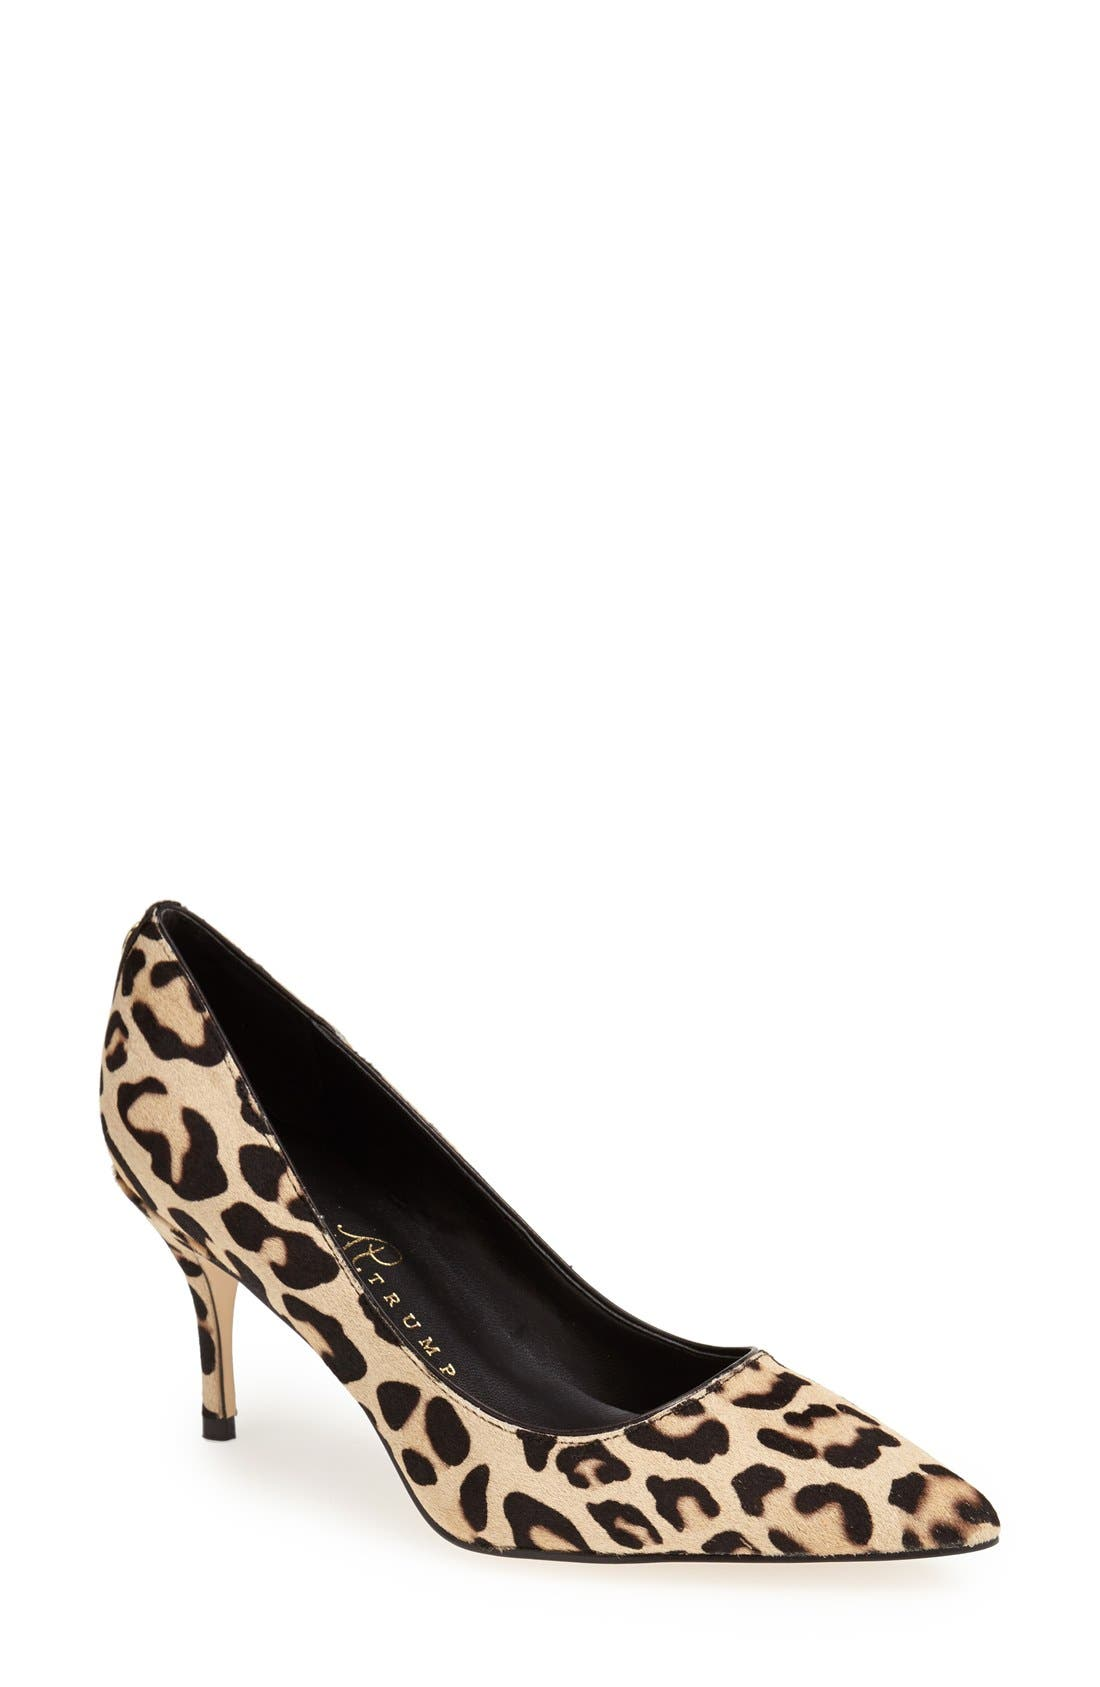 Alternate Image 1 Selected - Ivanka Trump 'Tirra' Pointy Toe Pump (Women)